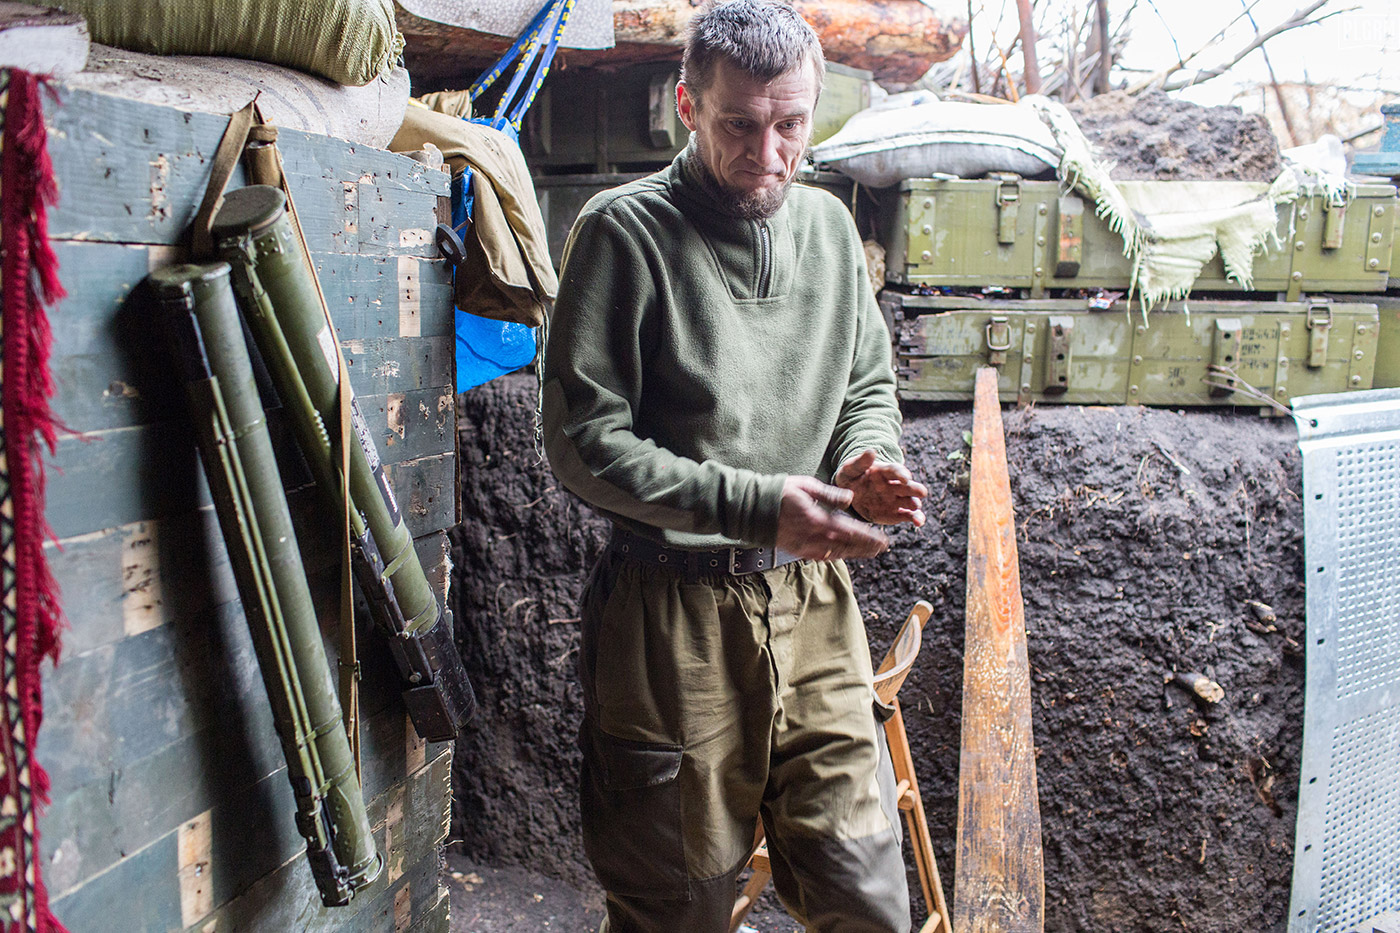 A Ukrainian soldier takes a break from constructing stairs to a sleeping area in one of the trench systems.